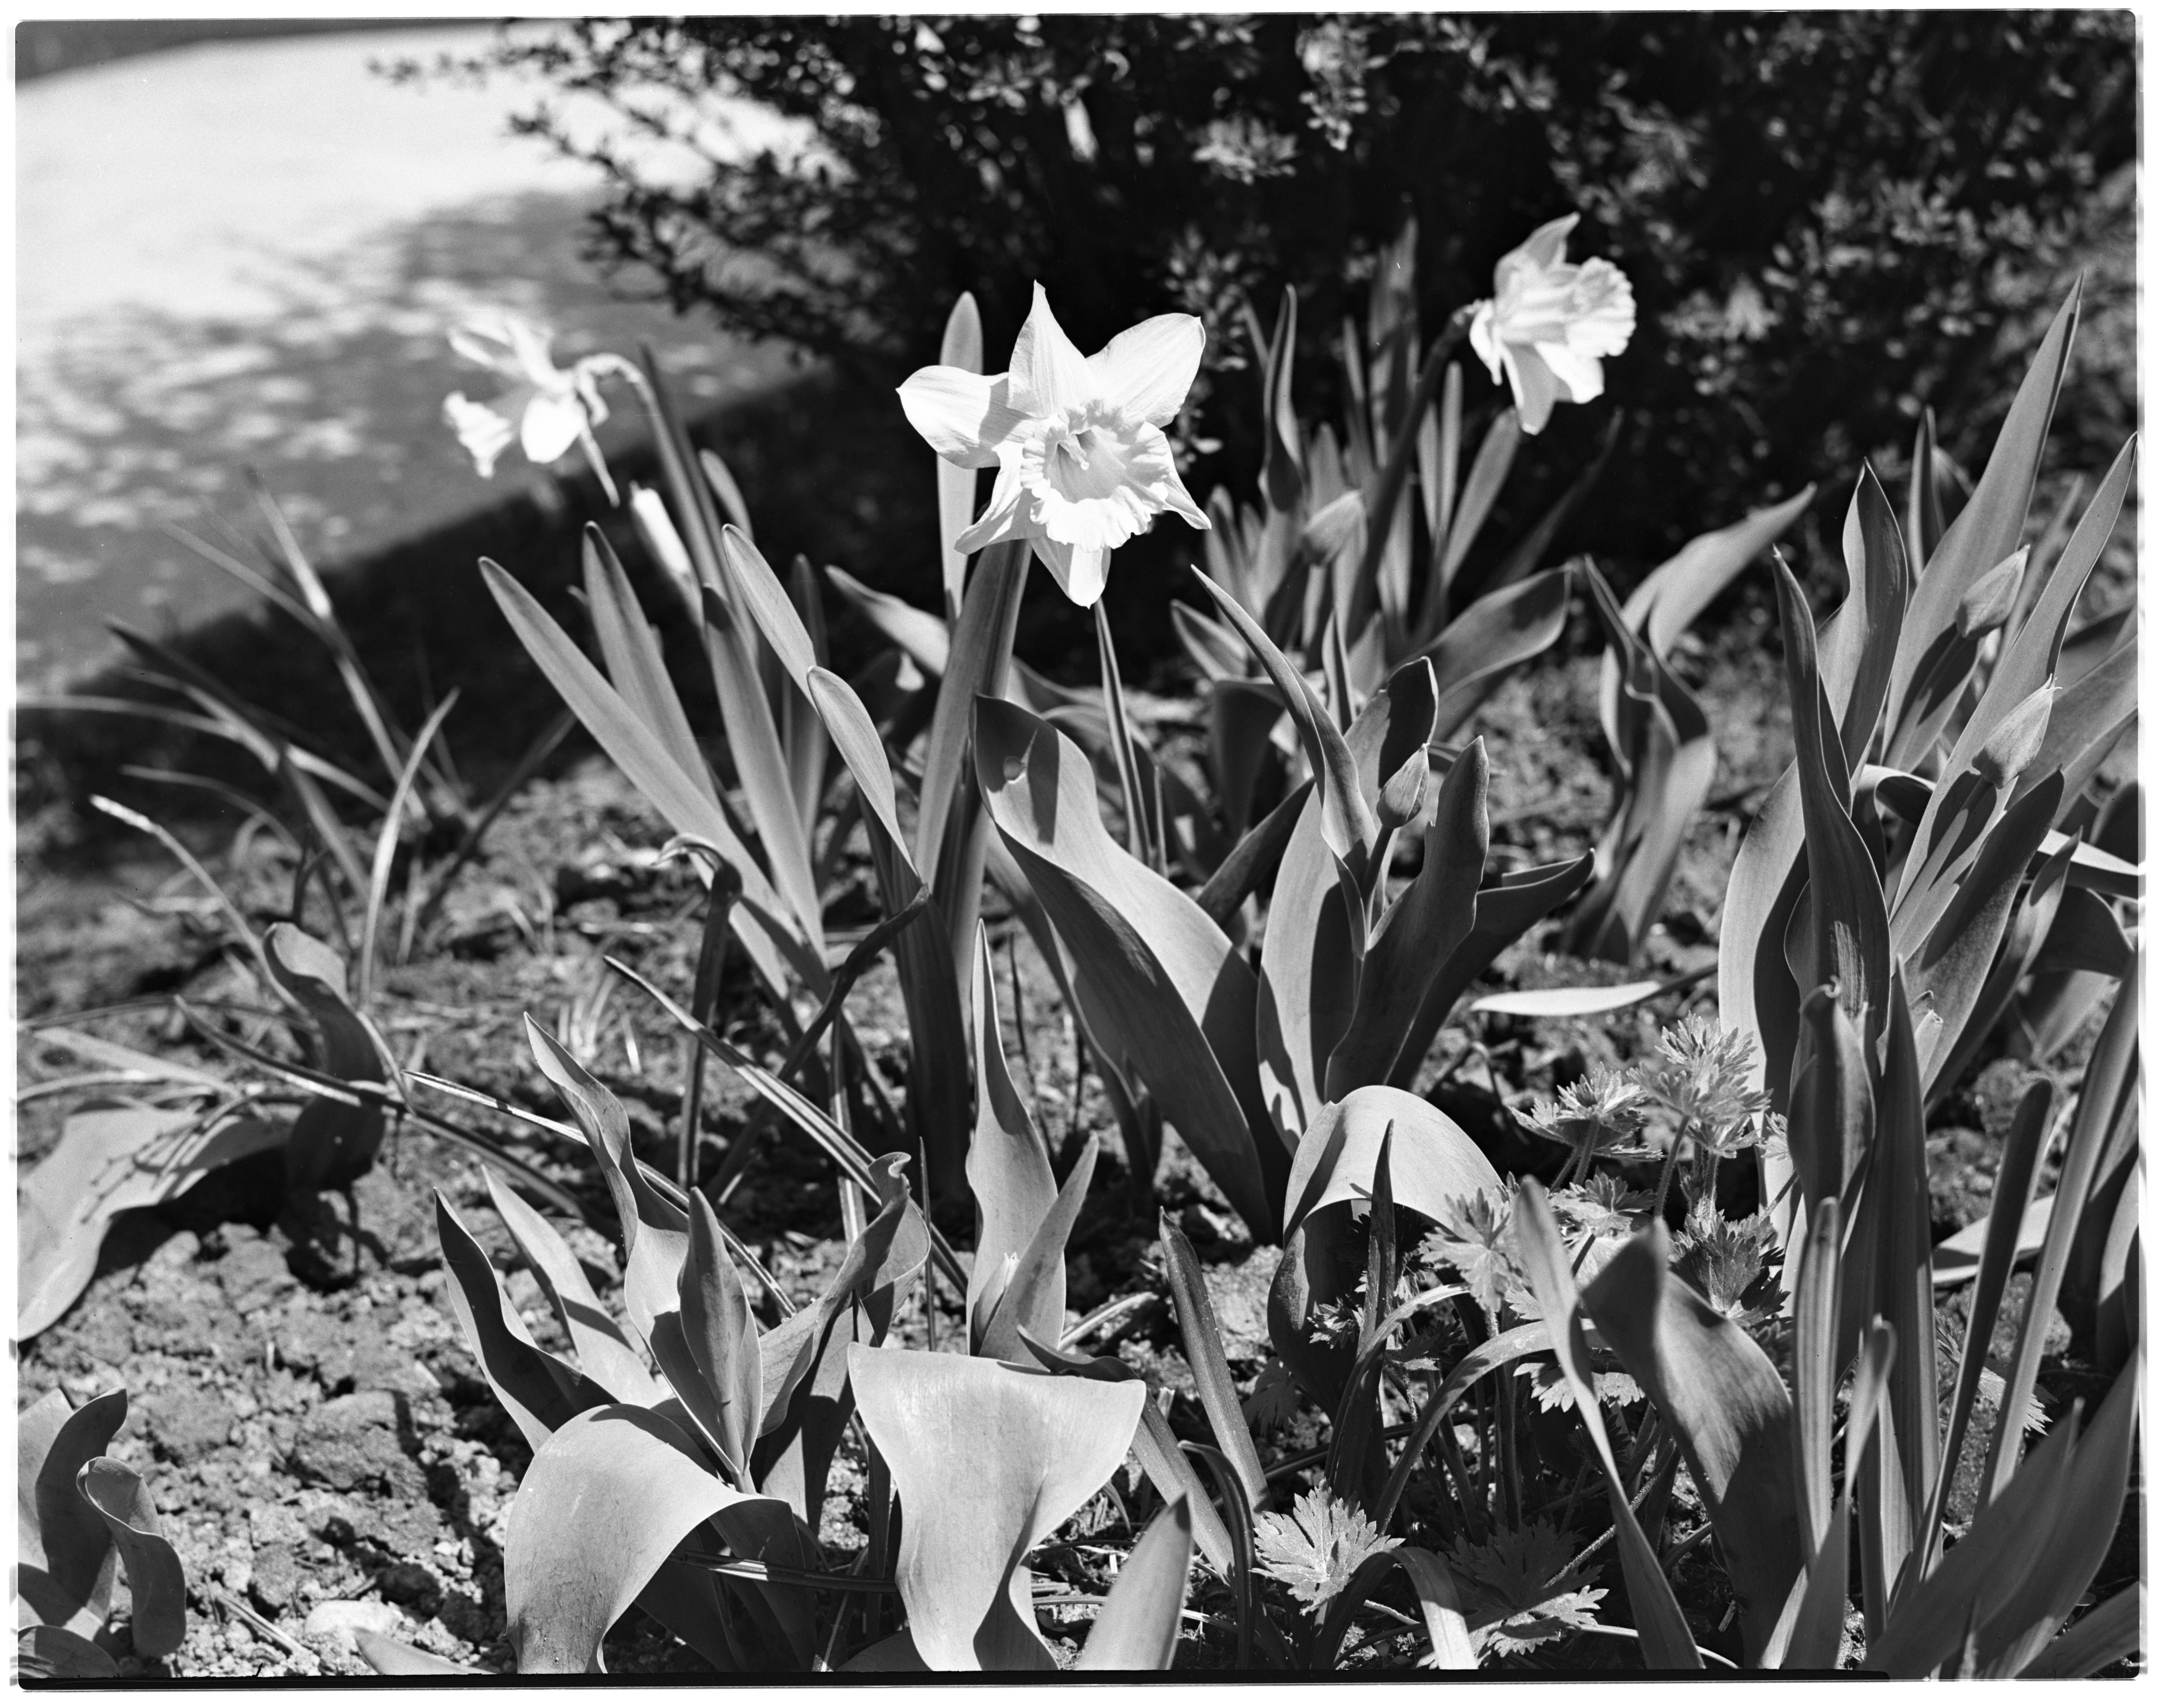 Lemon Lilies at the Arthur W. Stace and Lillian M. Stace Garden image